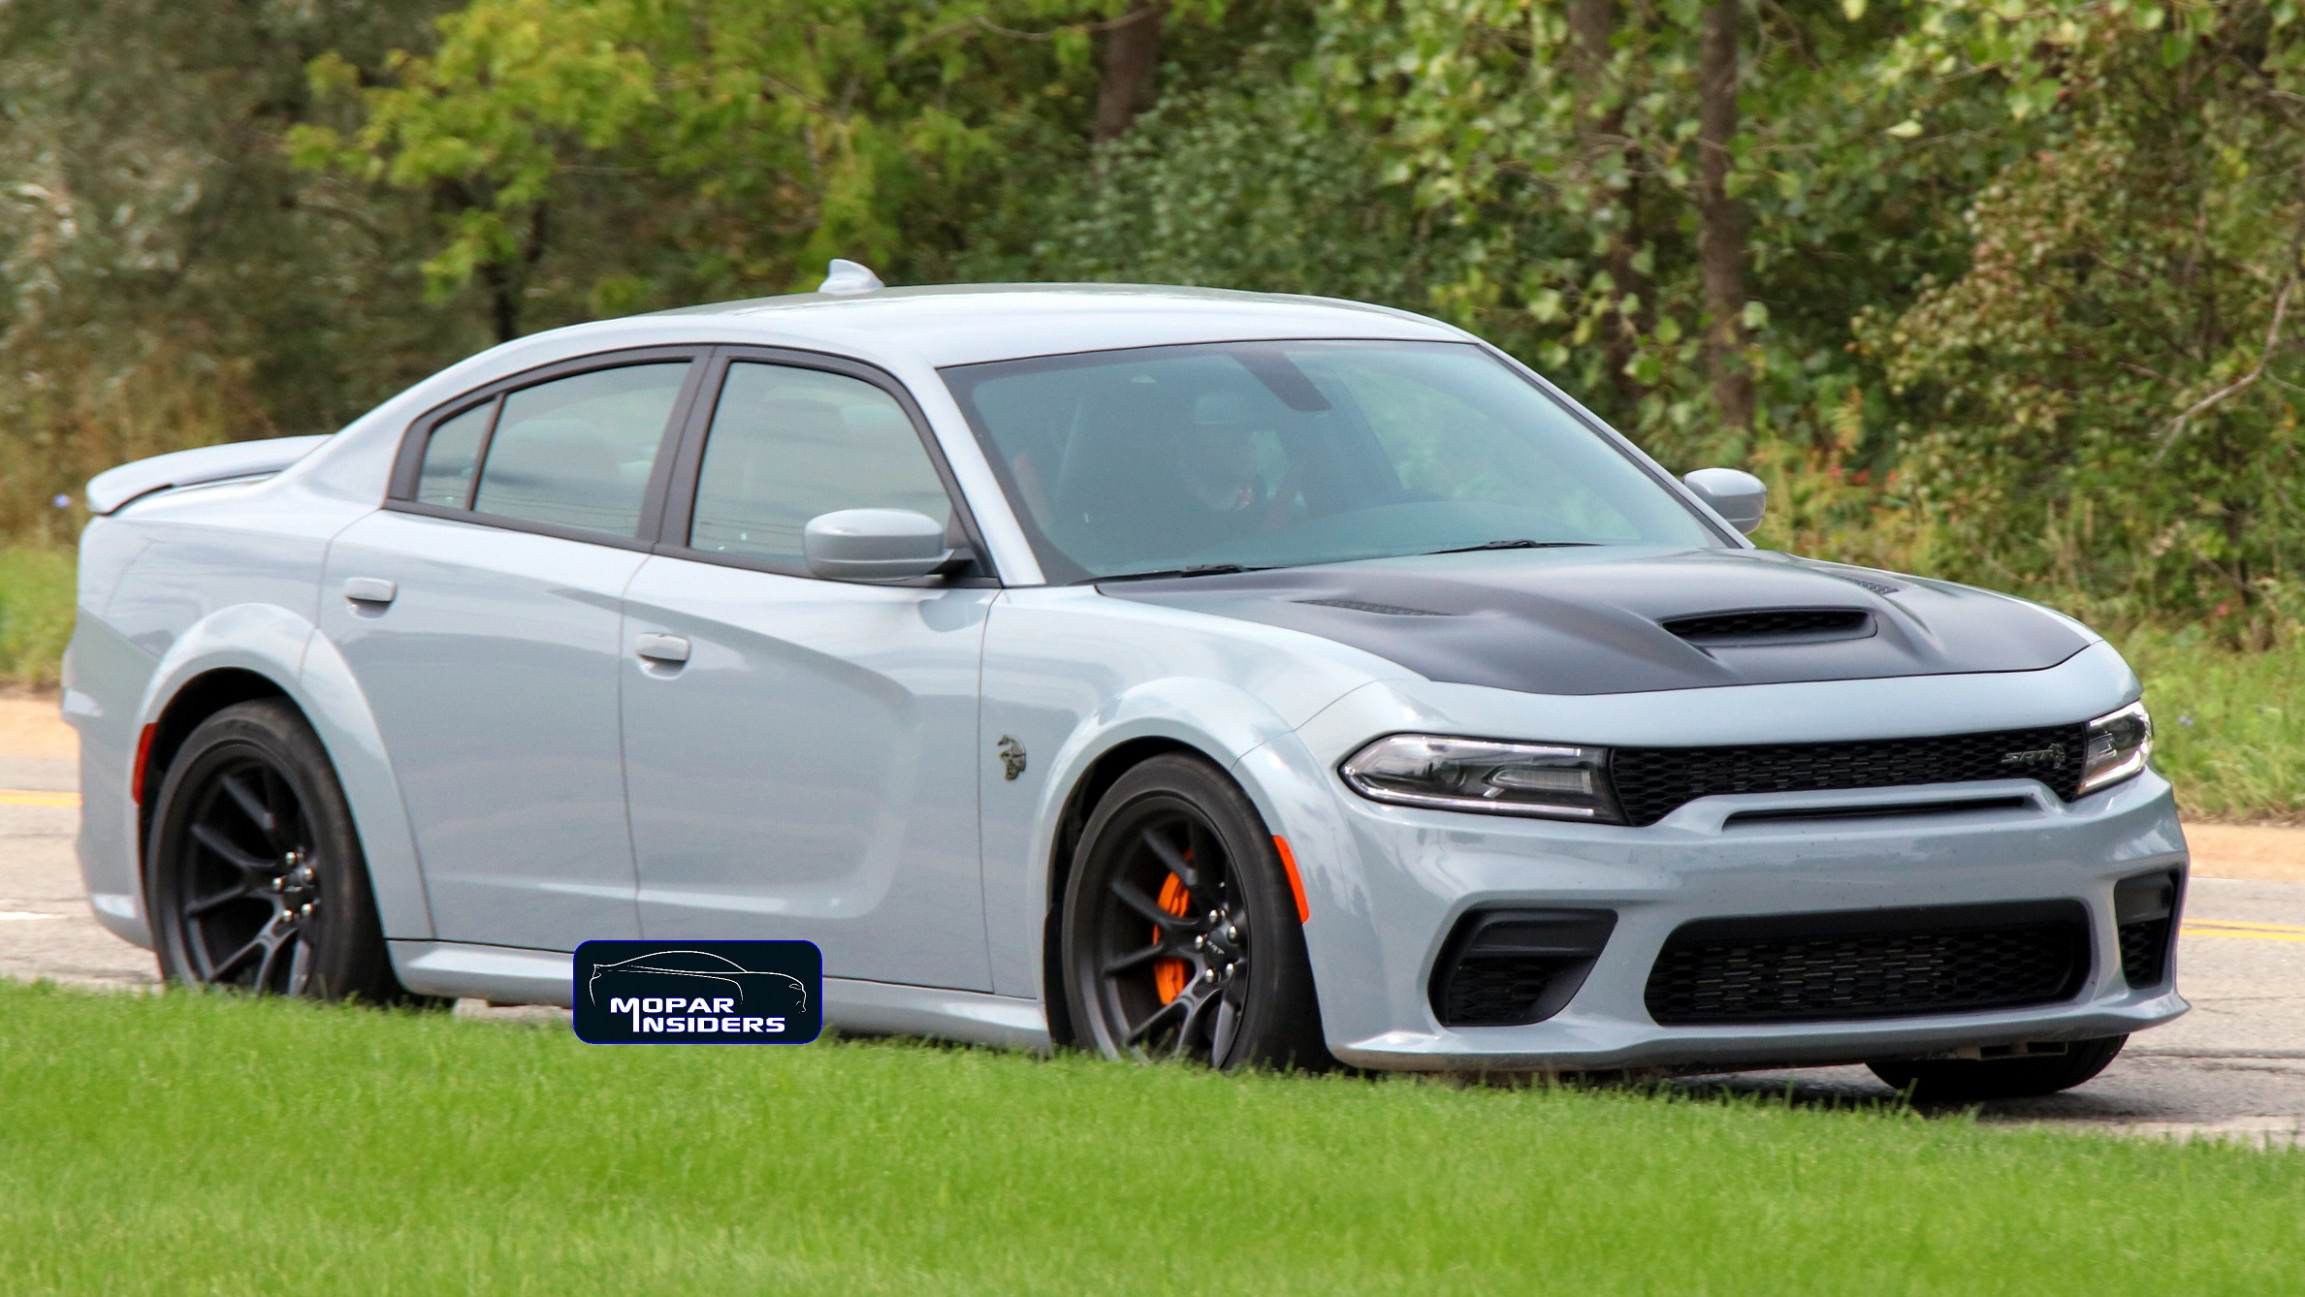 New Model and Performance 2022 Dodge Charger Srt 8